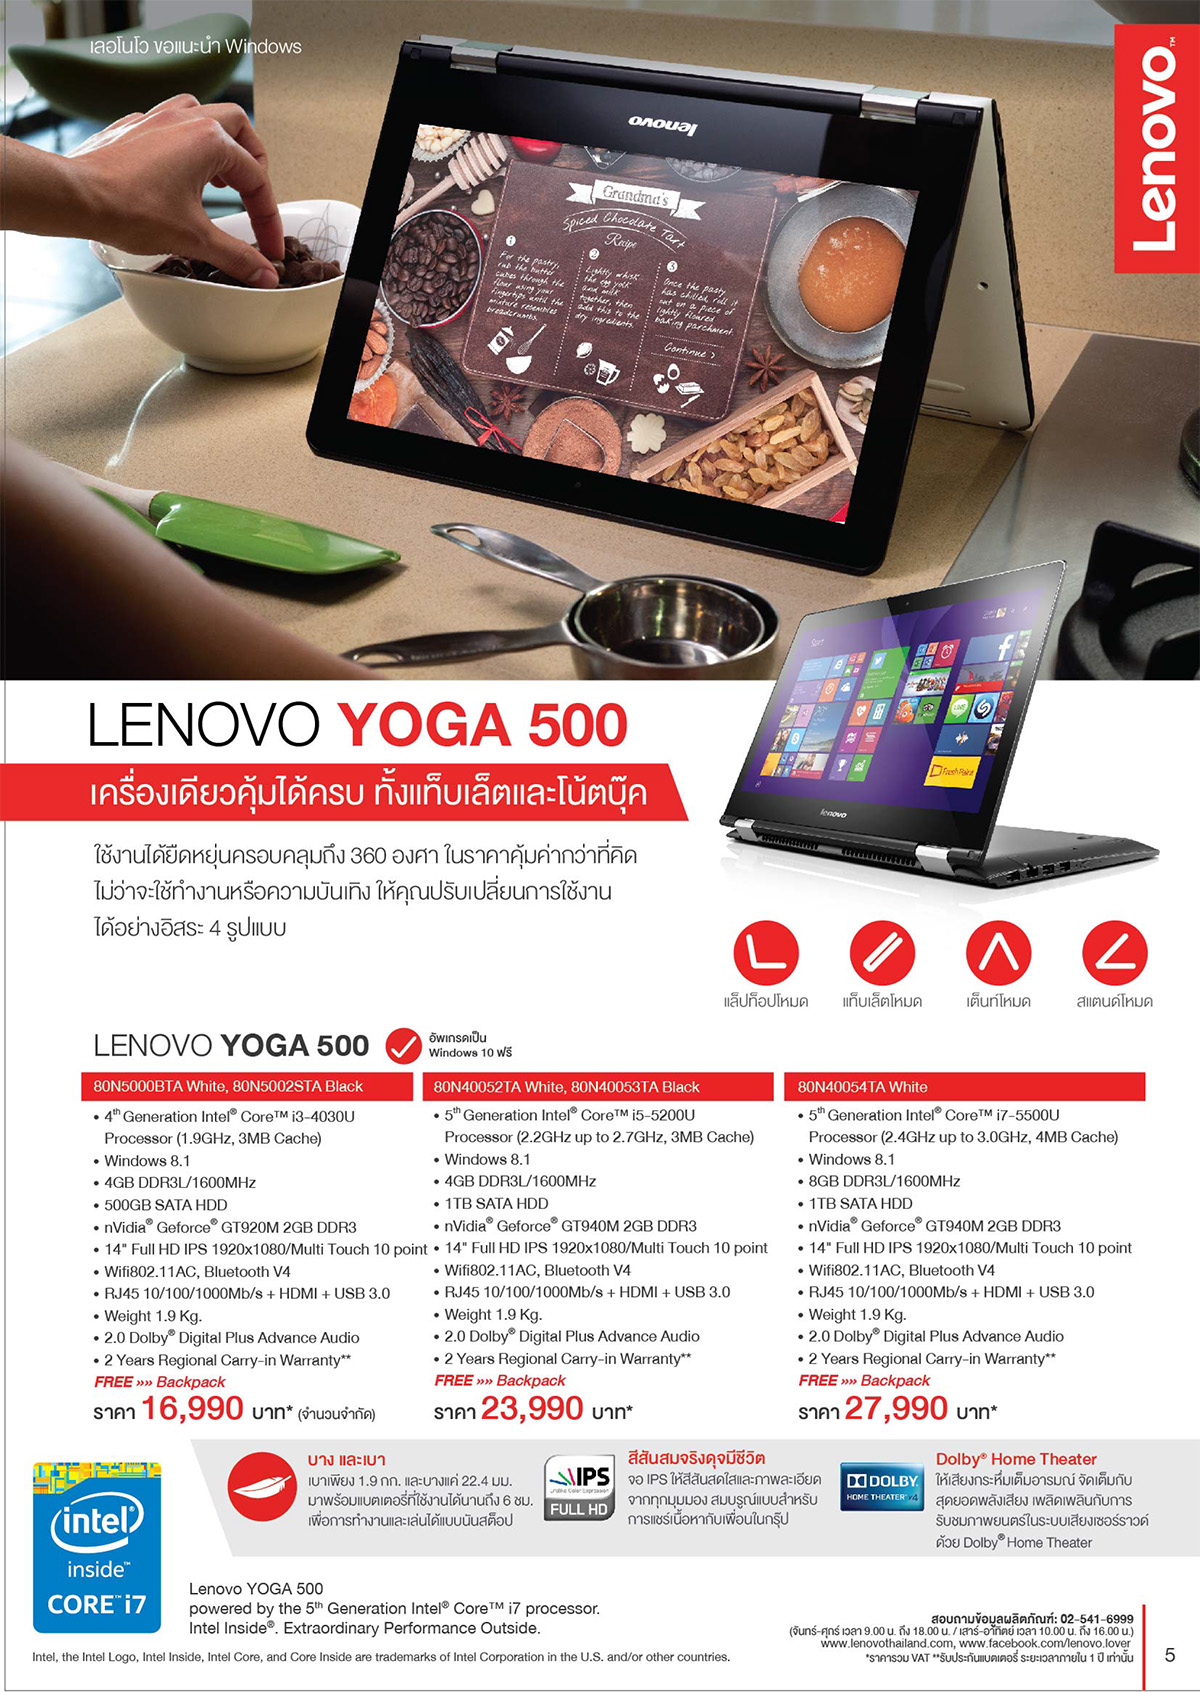 Lenovo Consumer Product Catalog Q2FY15_Final AW-5